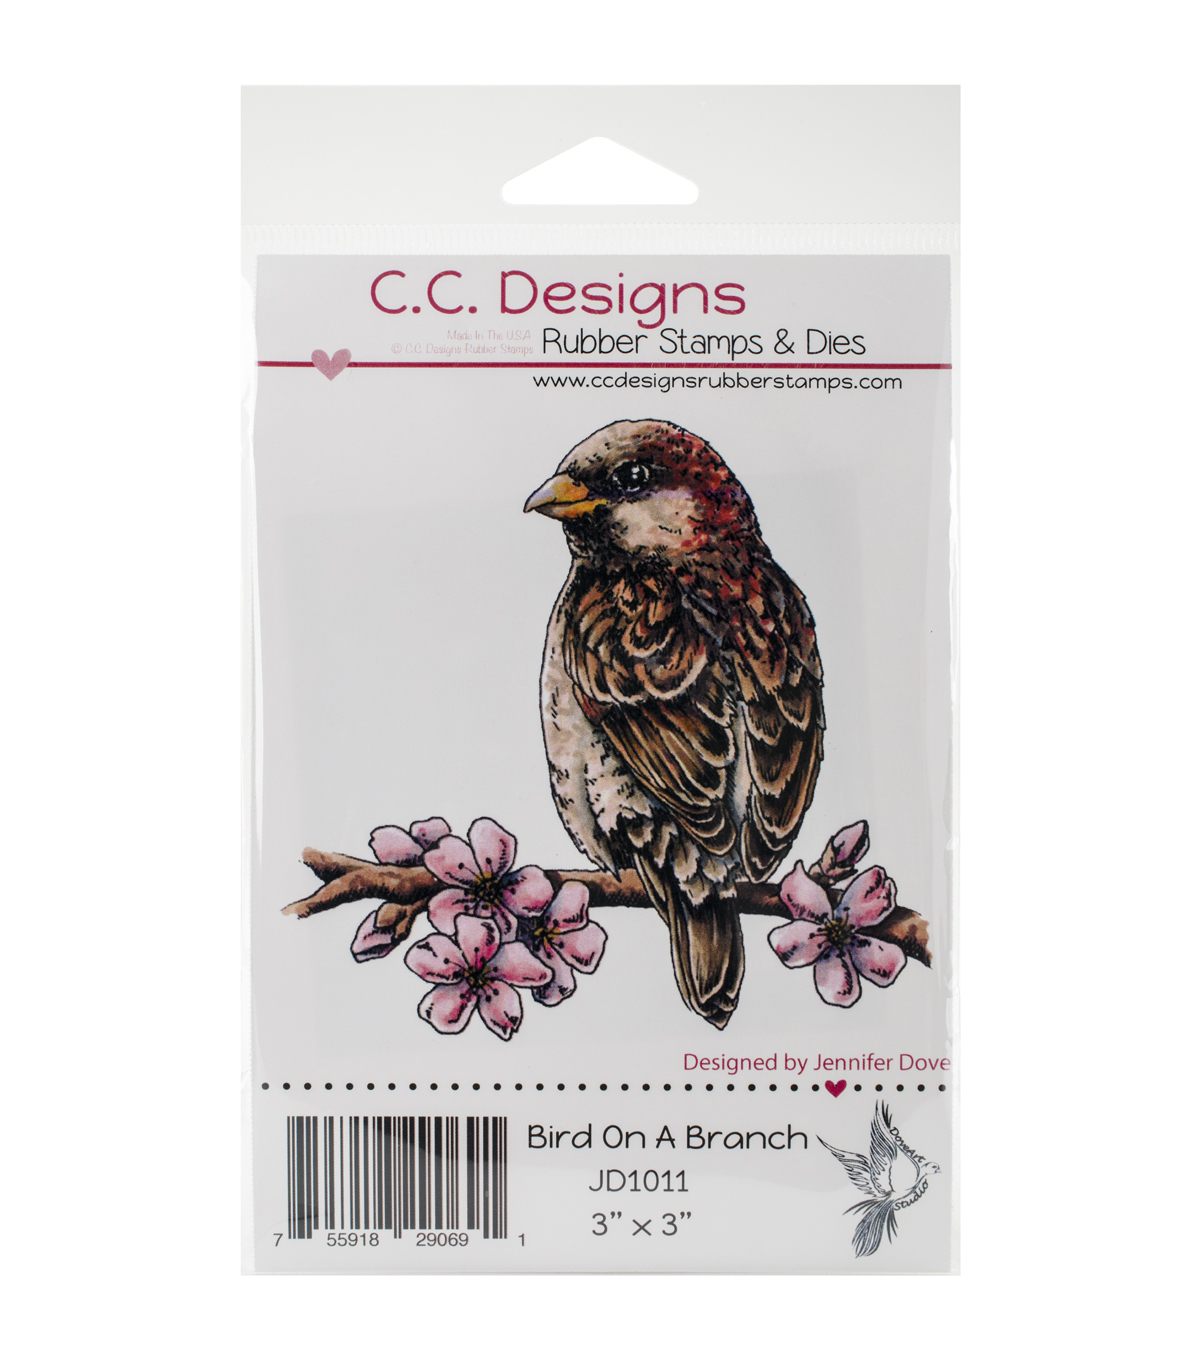 C.C. Designs Doveart Studio Bird On Branch Cling Stamp